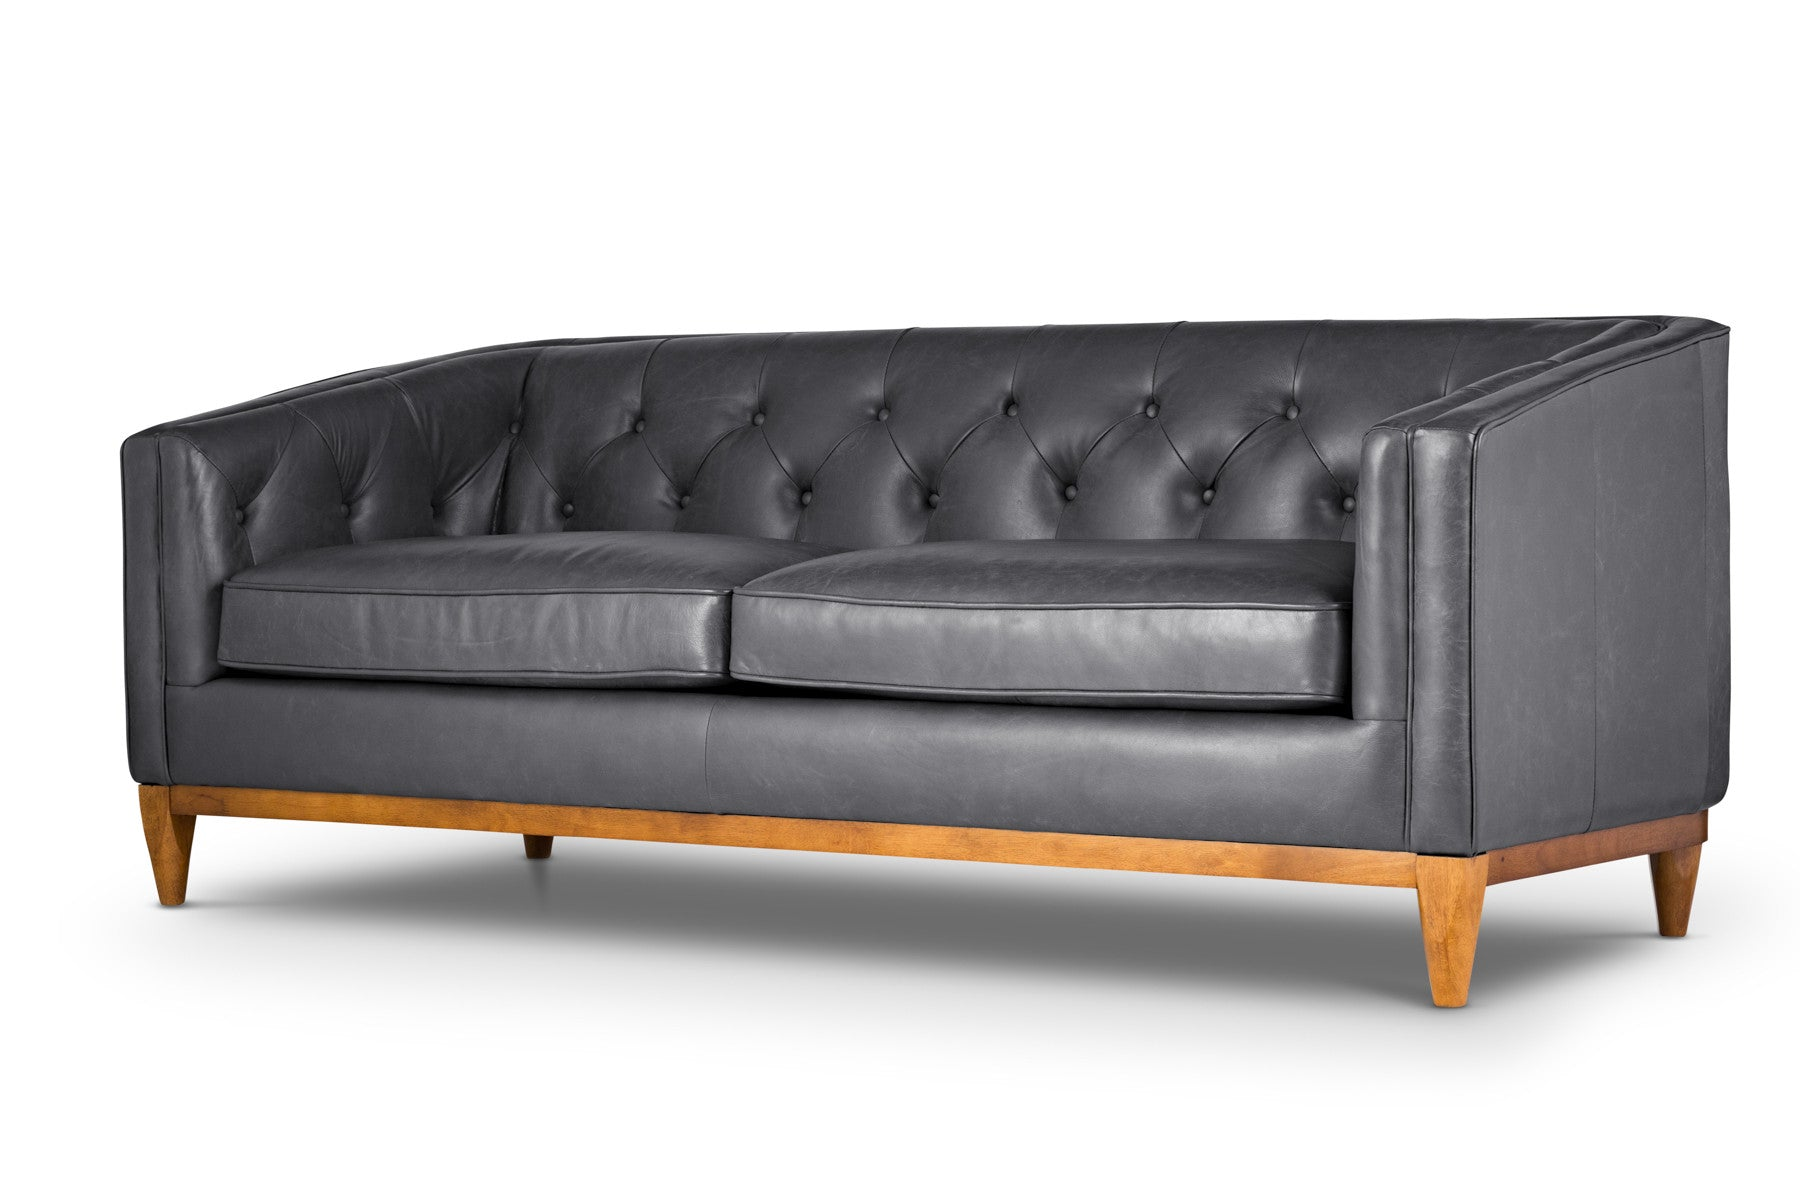 Affordable modern Italian leather sofa